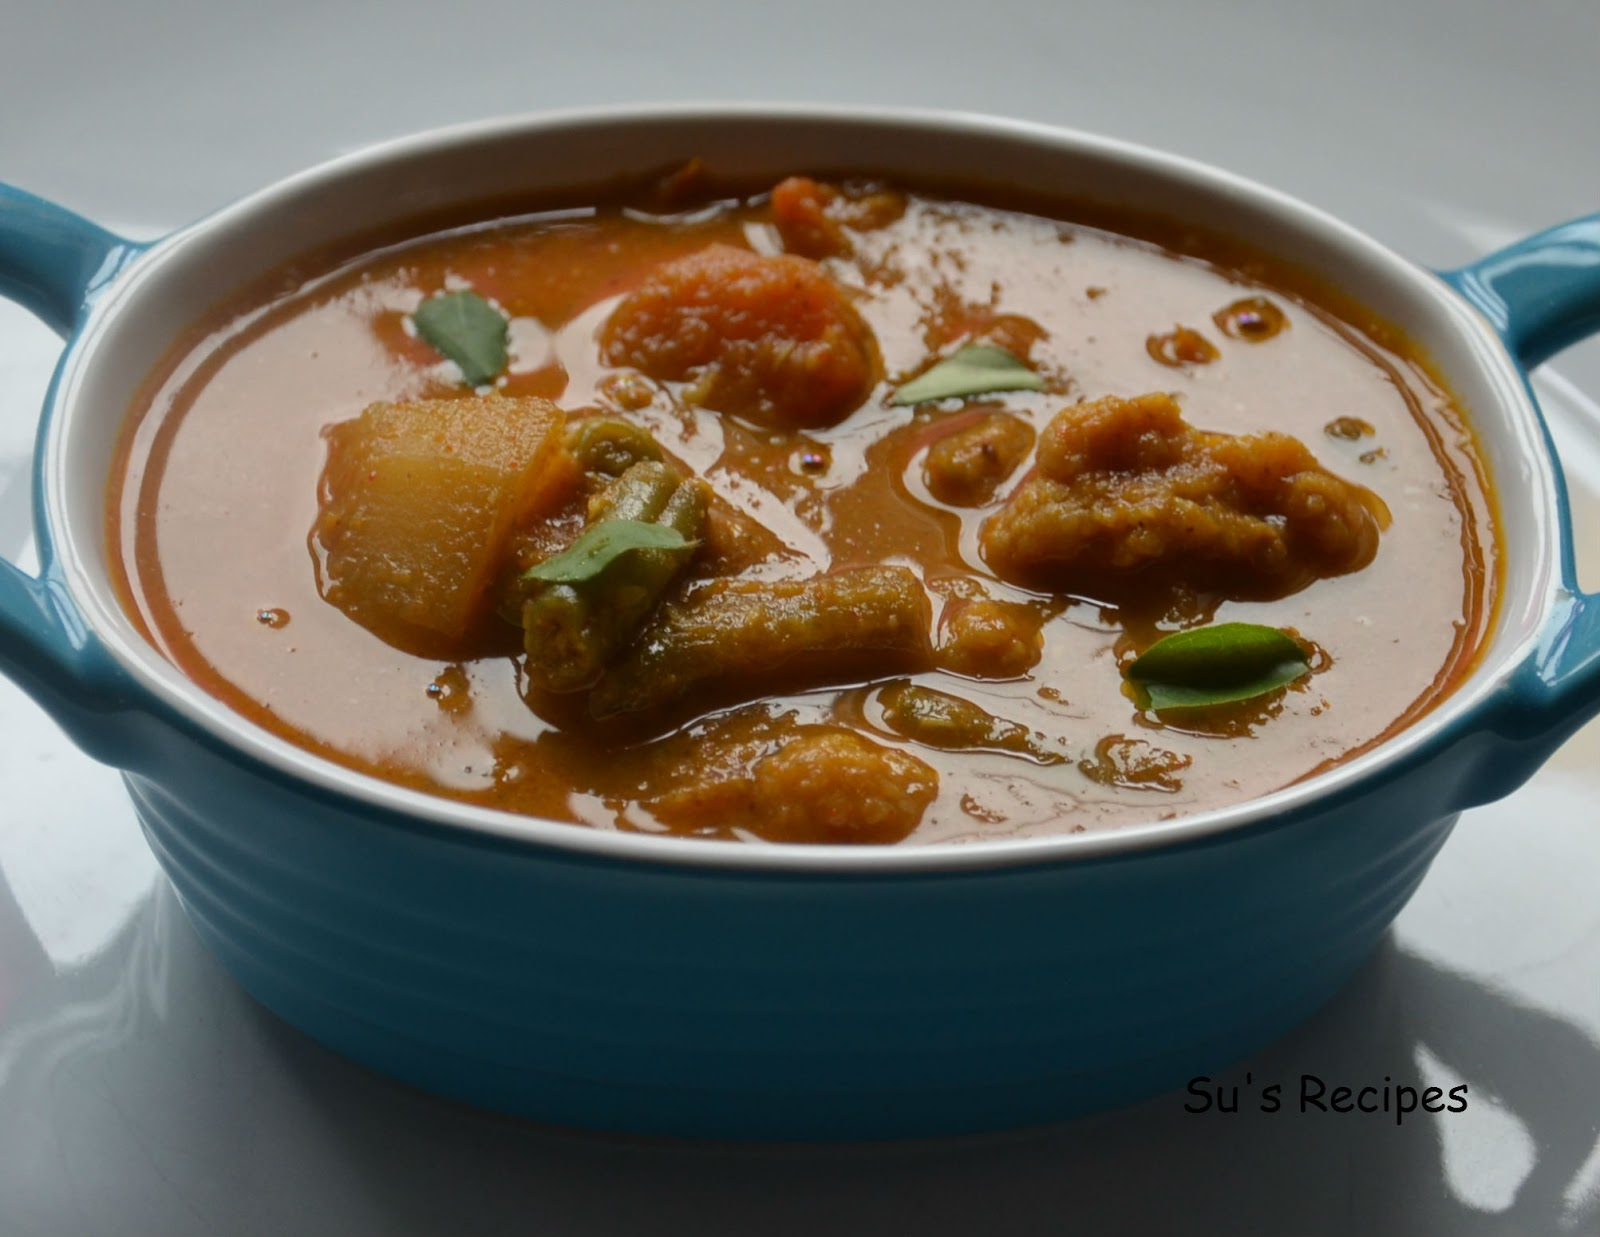 vegetable kurma, vegetable korma, jhaal, mix veg curry, spicy curry, aloo jhaal, south indian curry